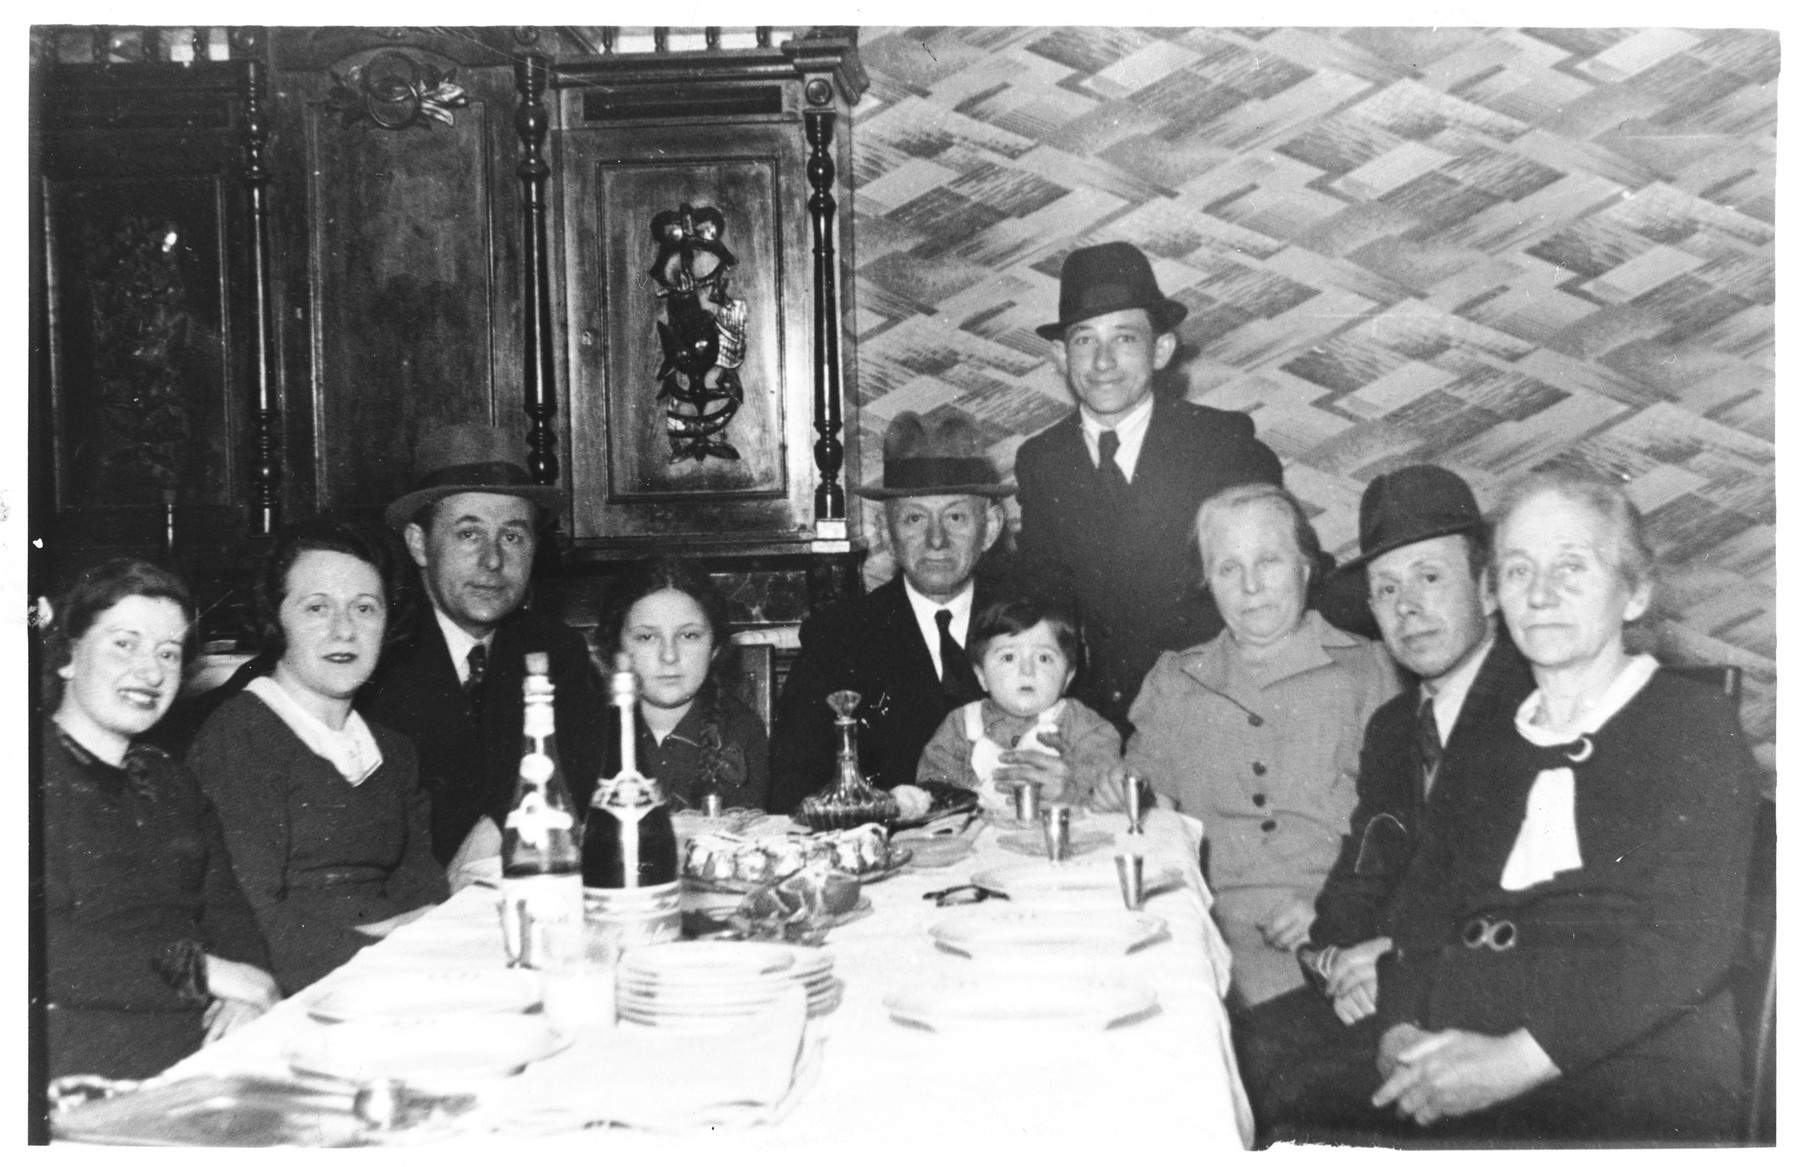 The Sztejnsznajd family celebrates its last seder in Luck prior to departing for America.  From right to left: a great-aunt, Avraham Gertner, Cipora Gertner, Yankel, Chaim Sztejnsznajd, Moshe Gertner, Sara Sztejnsznajd, Josef Sztejnsznajd, Goldie Sztejnsznajd, and a cousin also named Goldie.